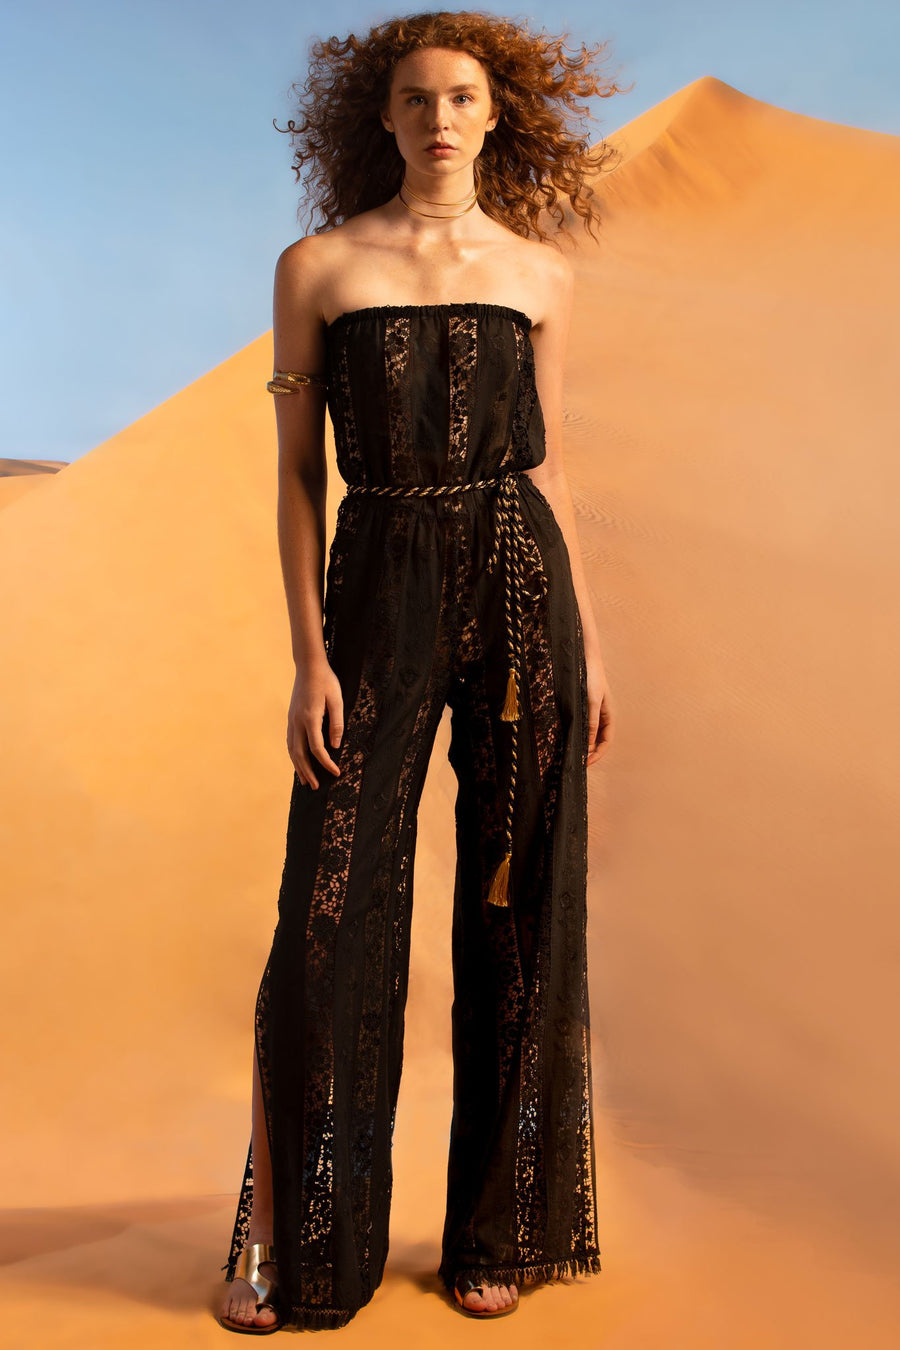 This is a photo of a woman wearing a strapless black cotton and lace embroidered jumpsuit. It has an elastic waistline and side leg slits. The hemline is finished with black fringe and the model wears a gold and black metallic belt around the waist.